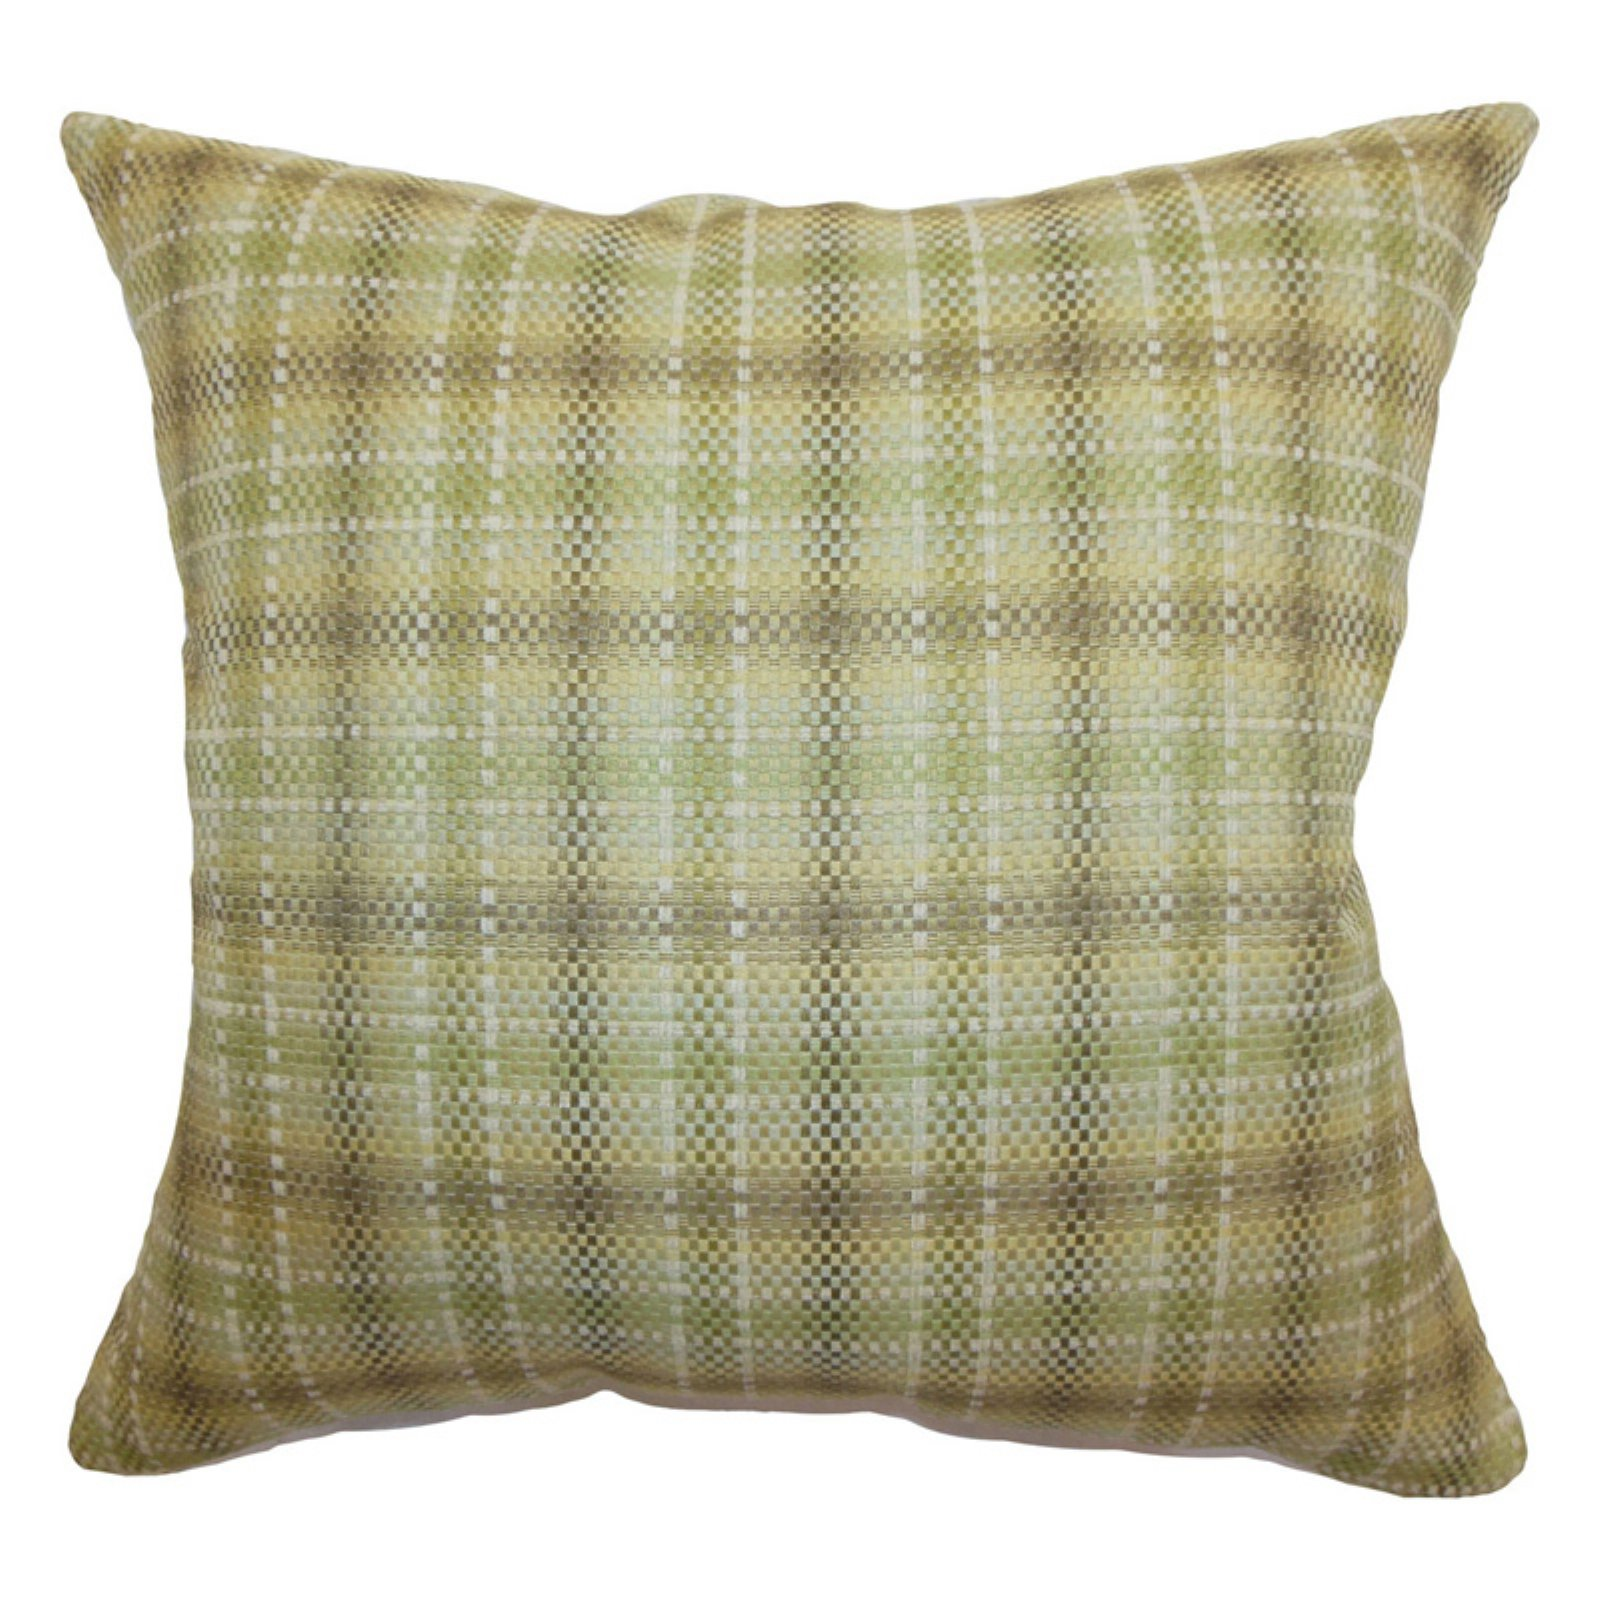 The Pillow Collection Adelasia Plaid Pillow - Leaf